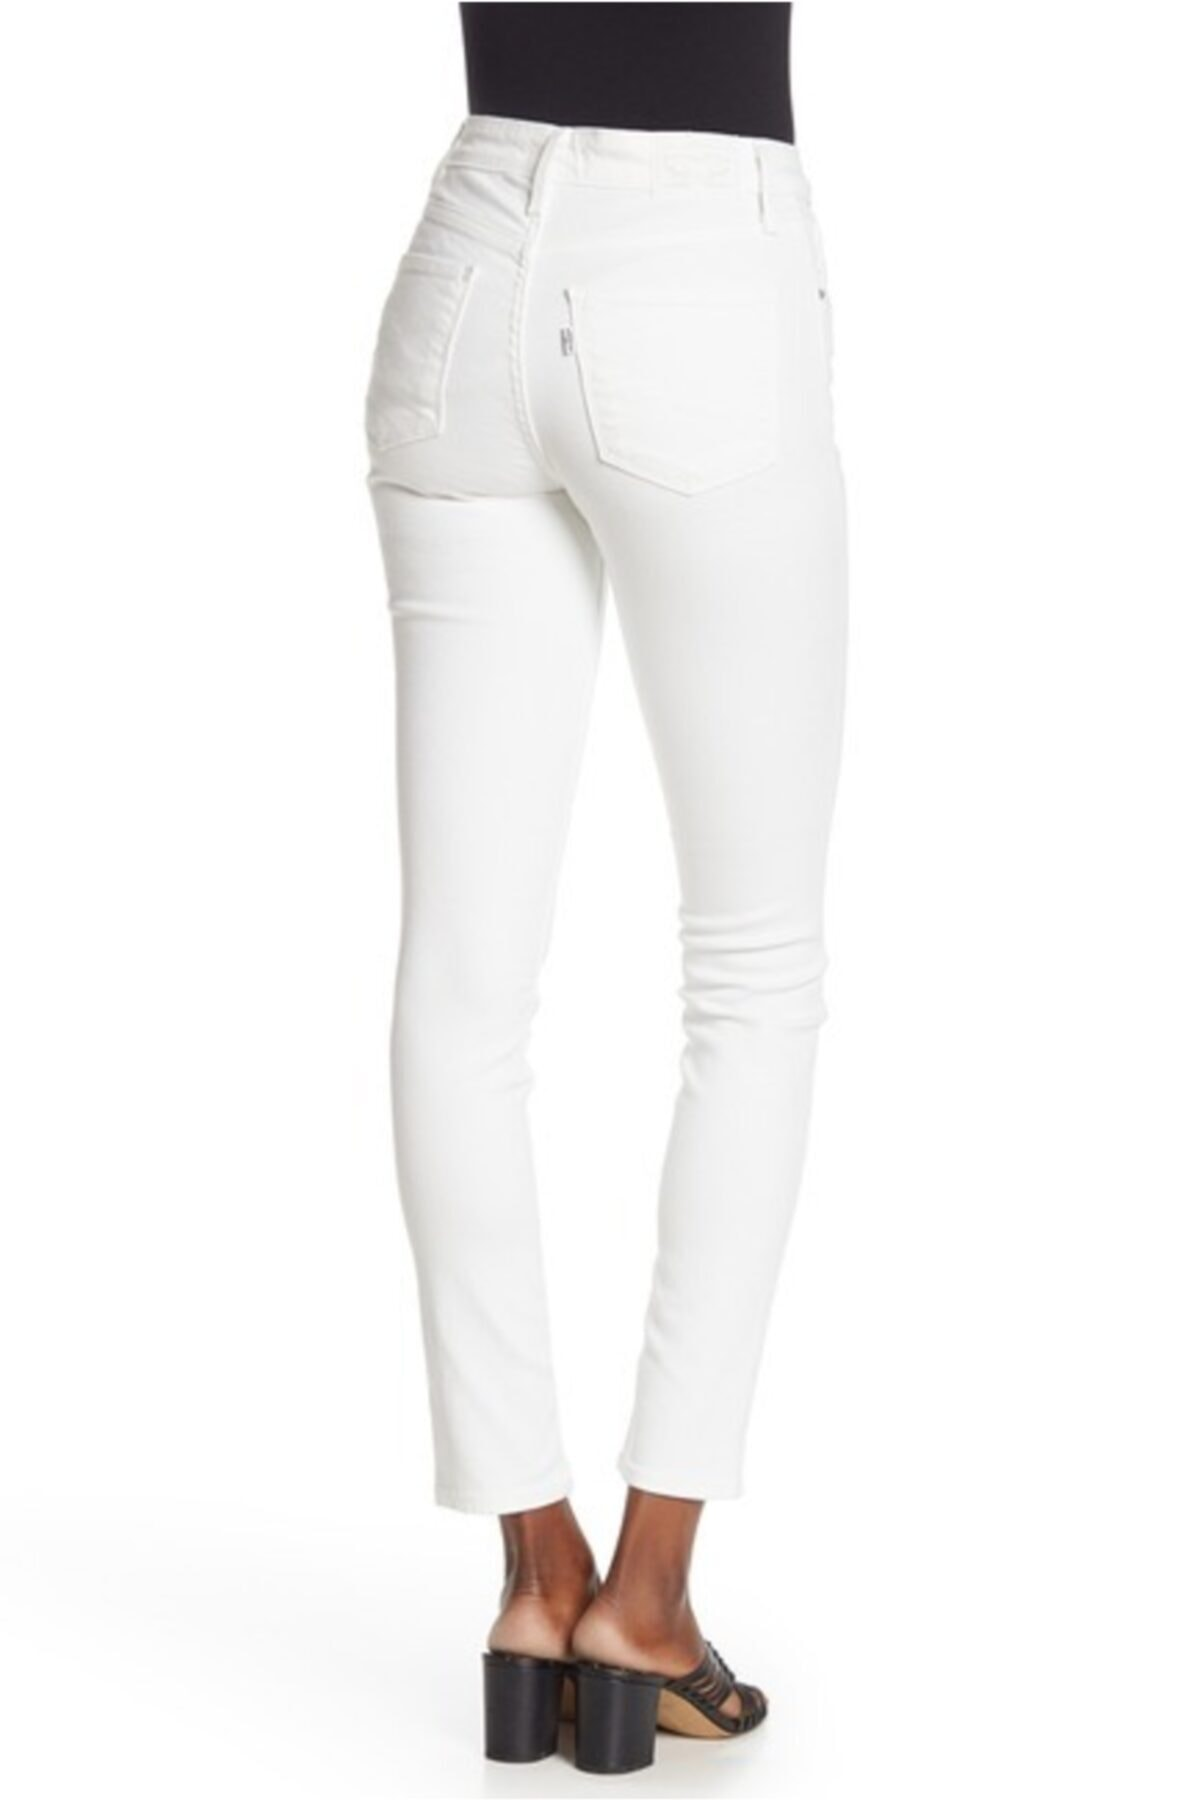 Levi's 721 High Rise Skinny Ankle Jeans 2